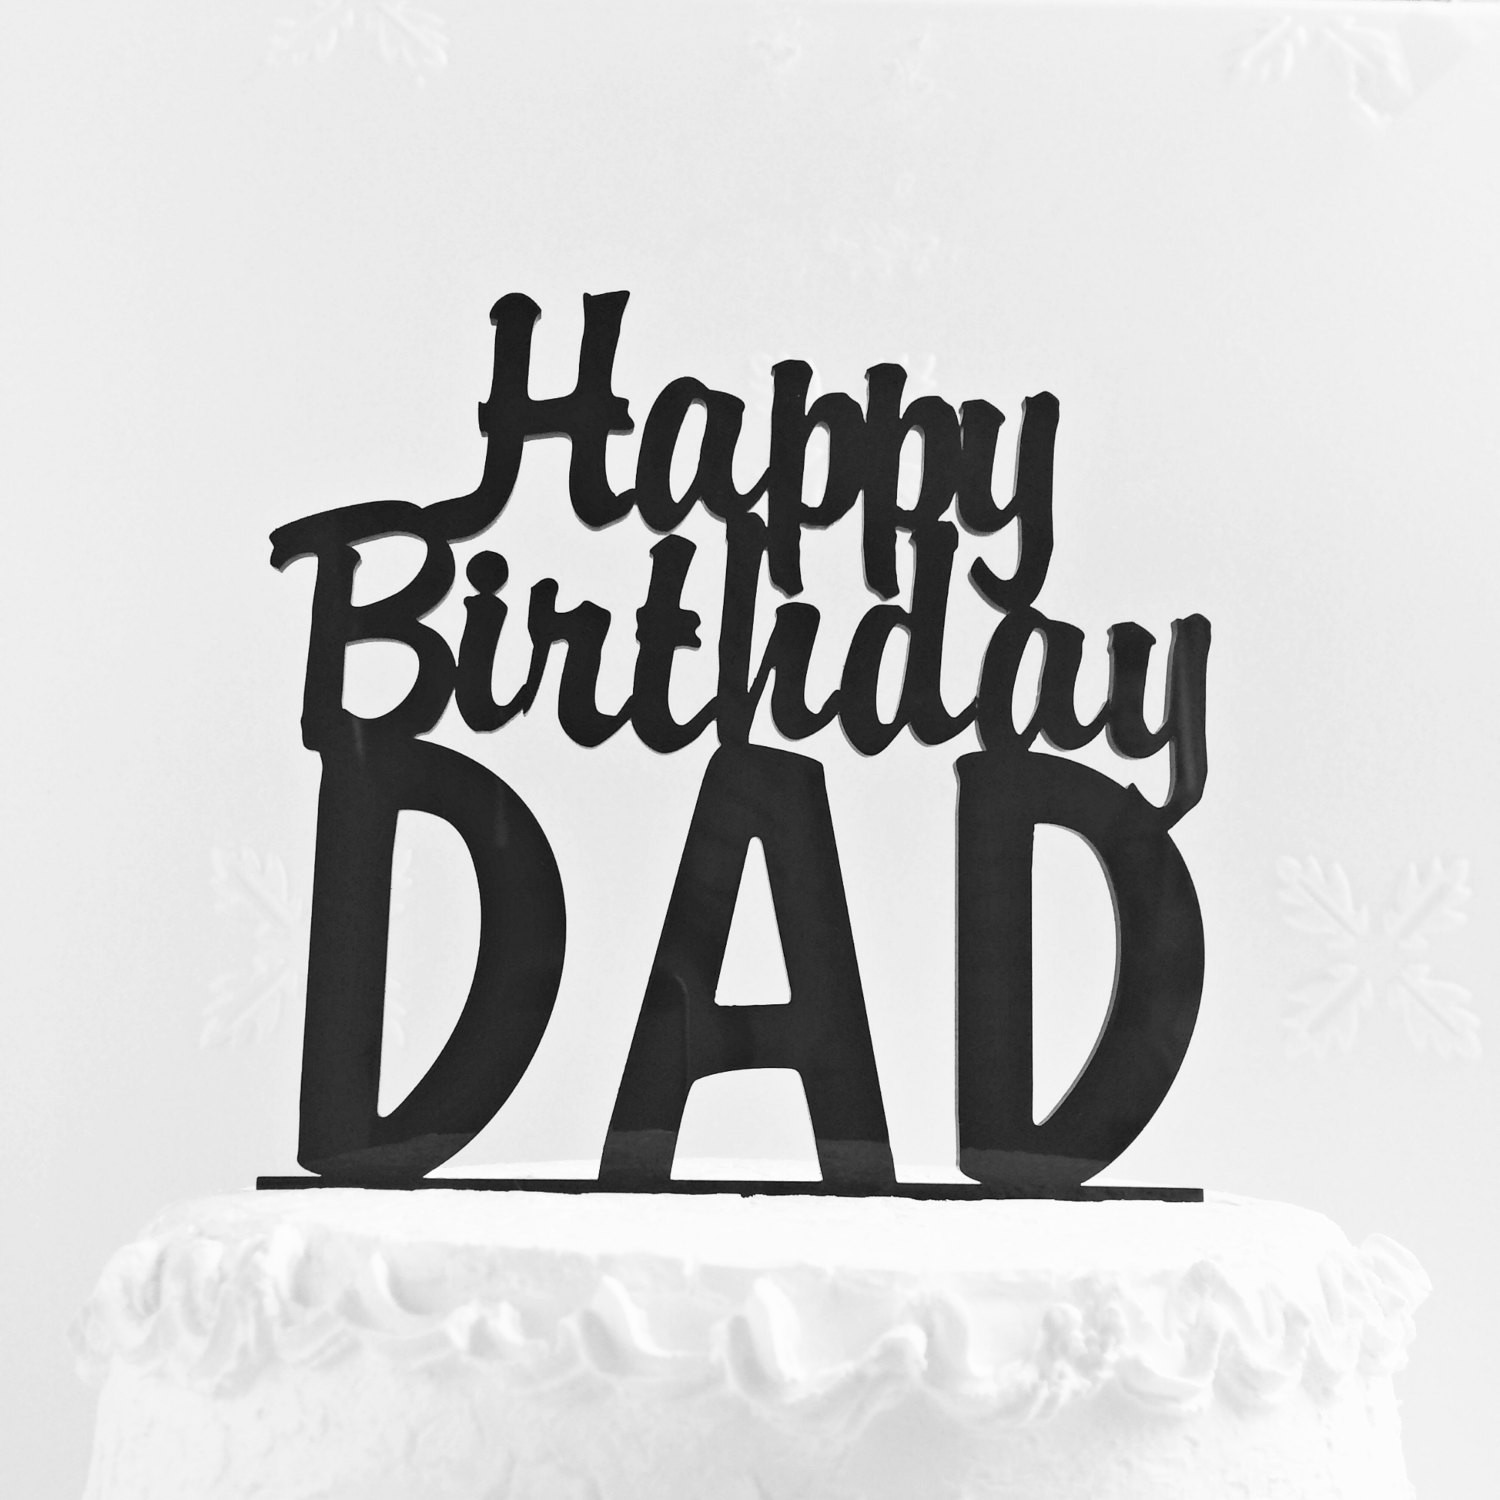 Happy Birthday Dad Cake  Happy Birthday Dad Cake Topper Father s Day Cake Topper